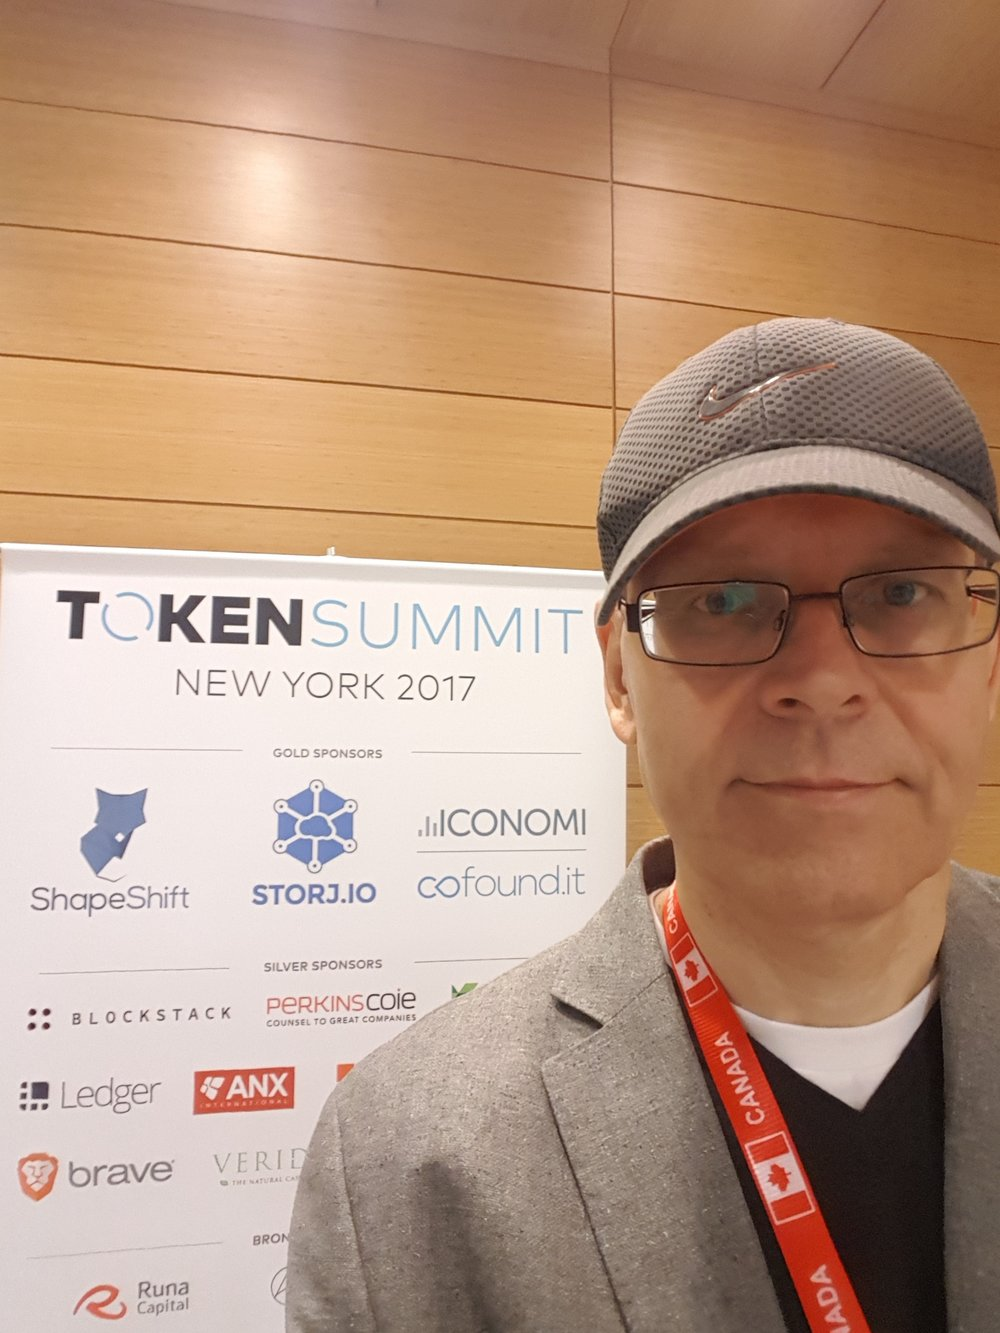 Promoting Nike hat at Token Summit :)